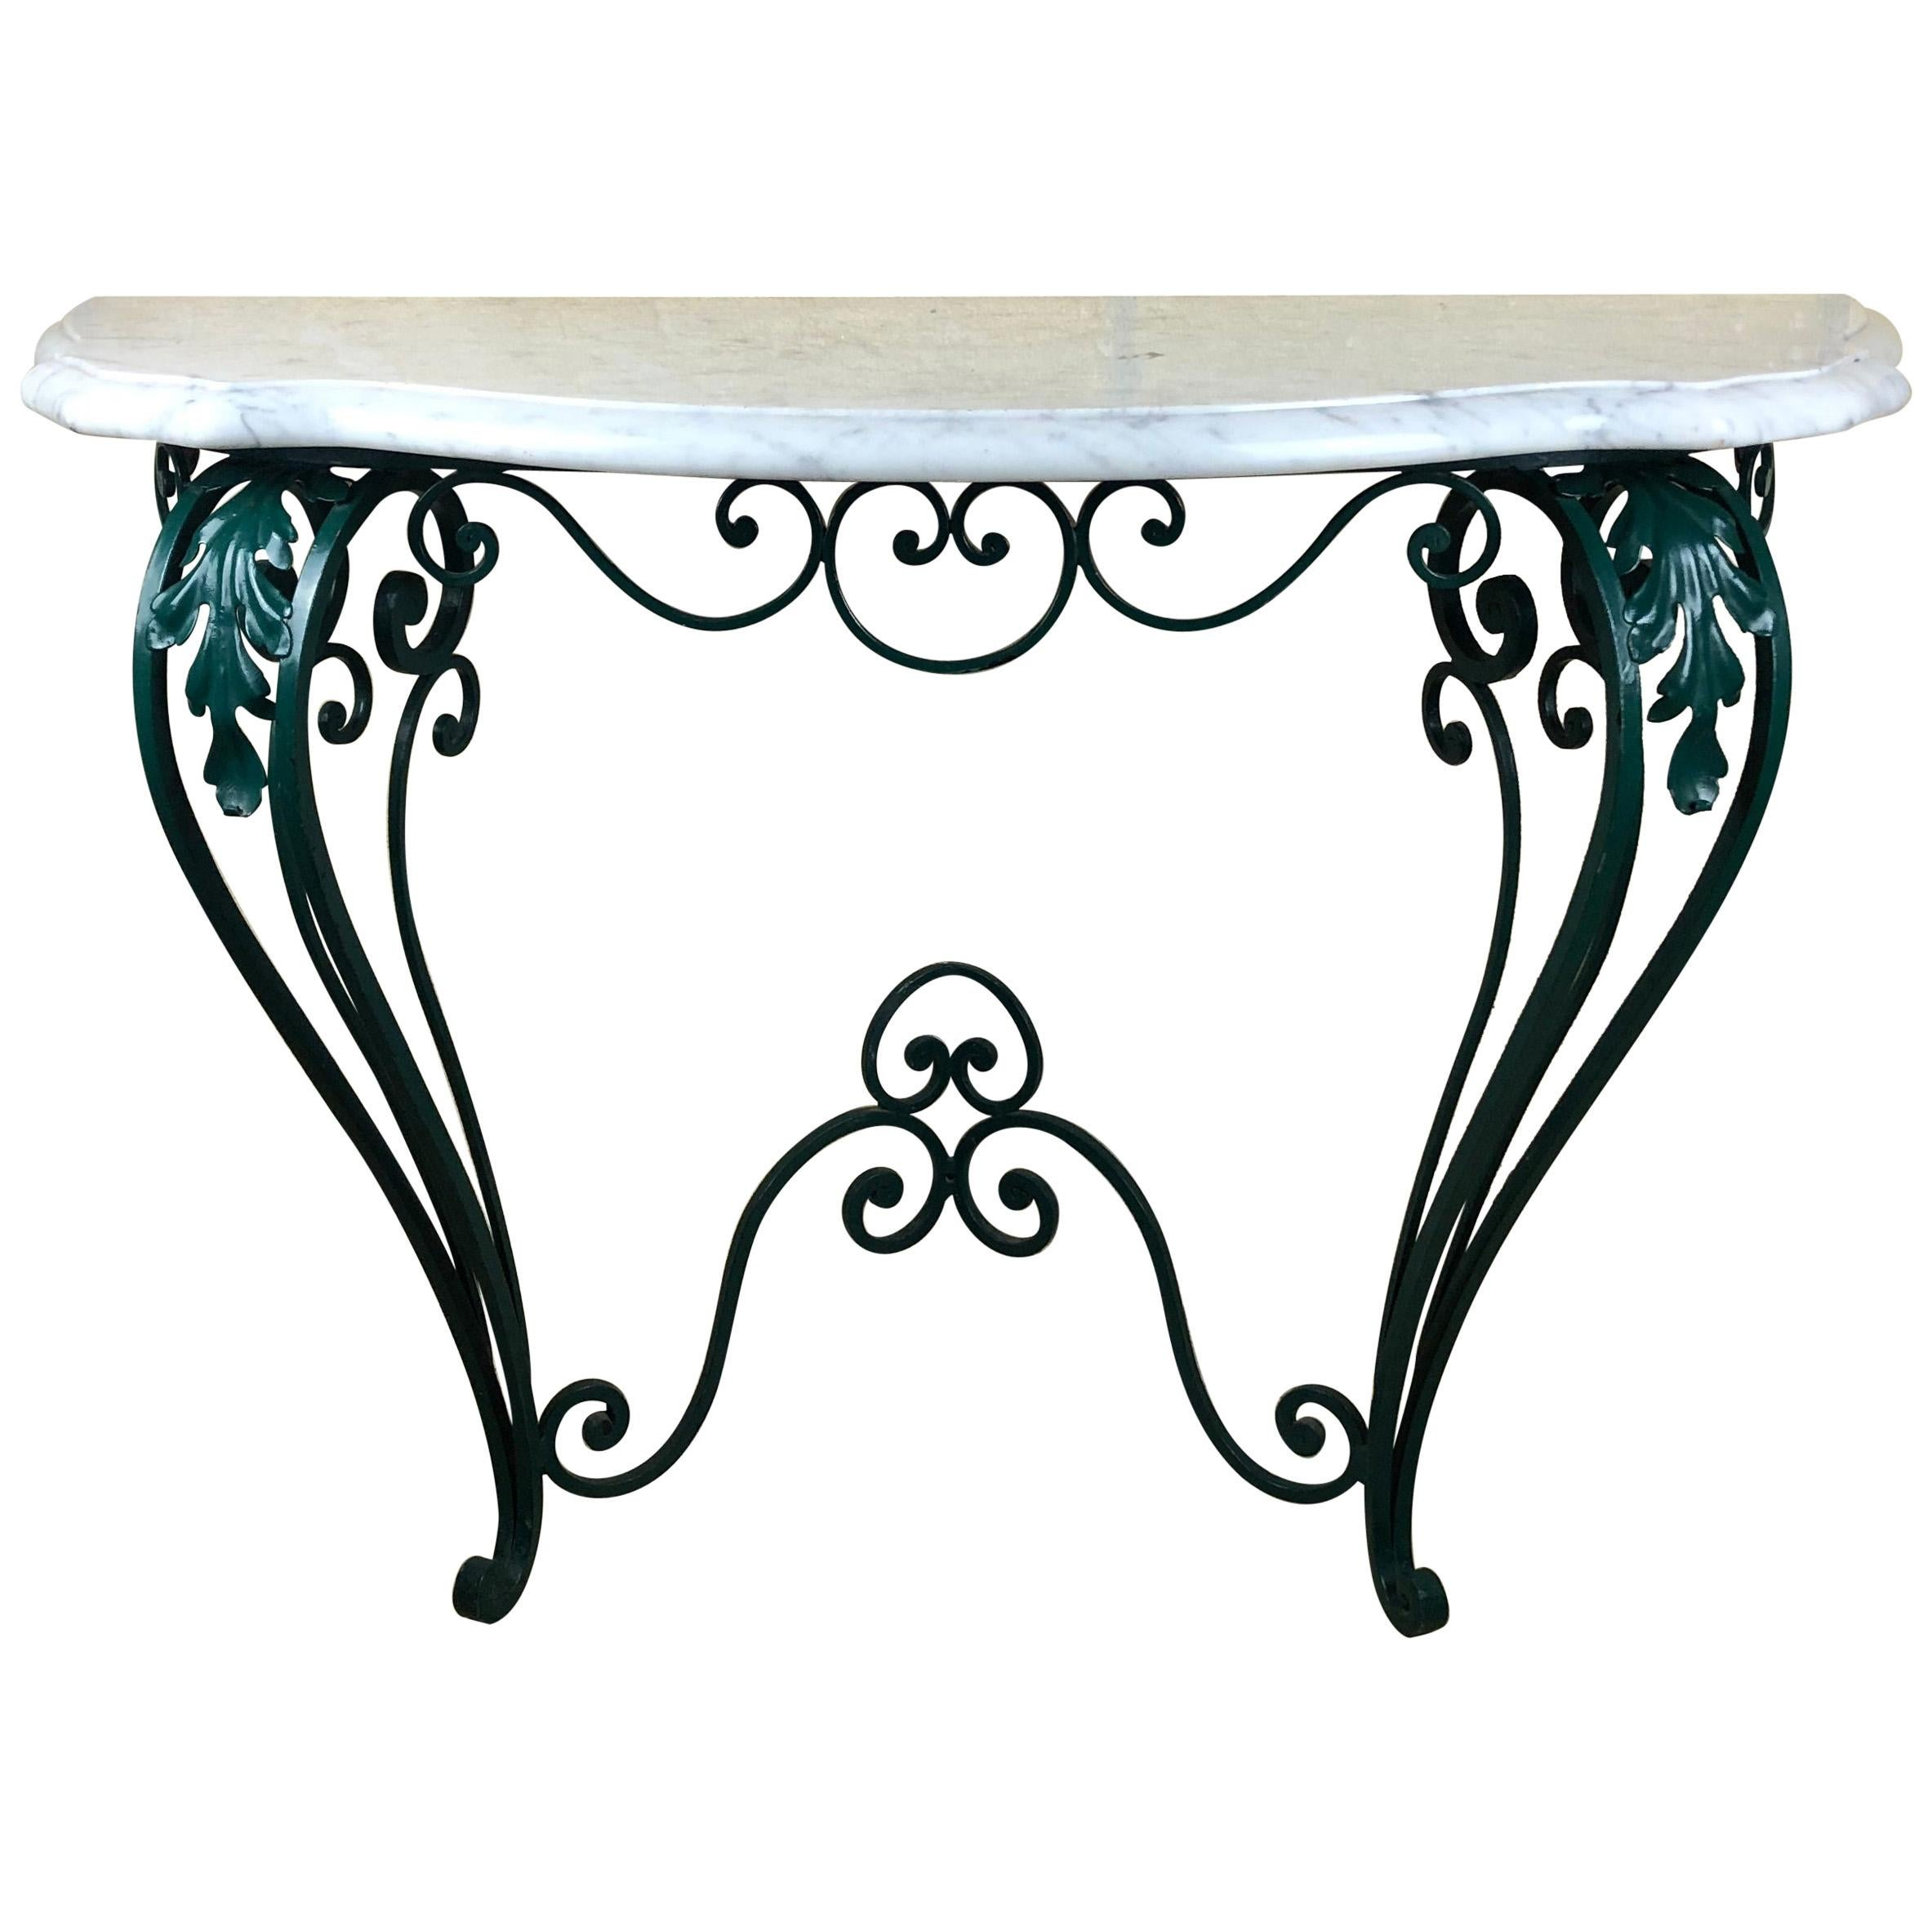 French Louis XV Style Wrought Iron Console Table with White Marble Top